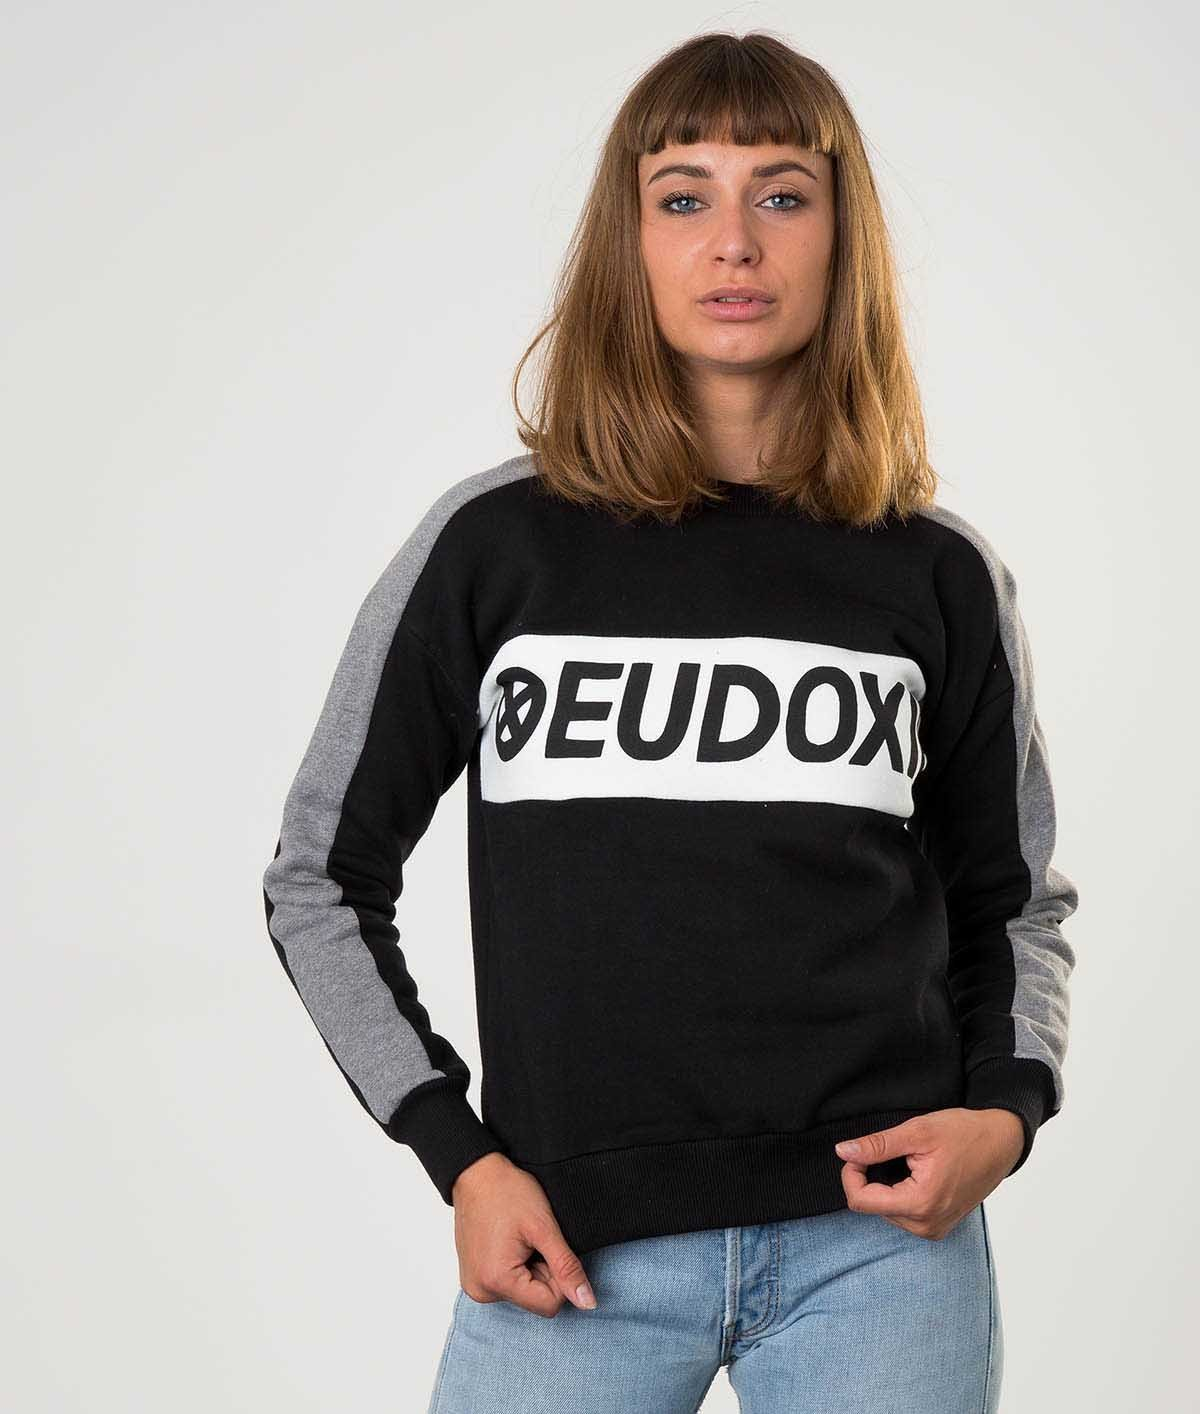 Eudoxie - Eudoxie Eudoxie Sweatshirt - Hoodies | Sweatshirts | Wind Stoppers - Salt Flats Clothing